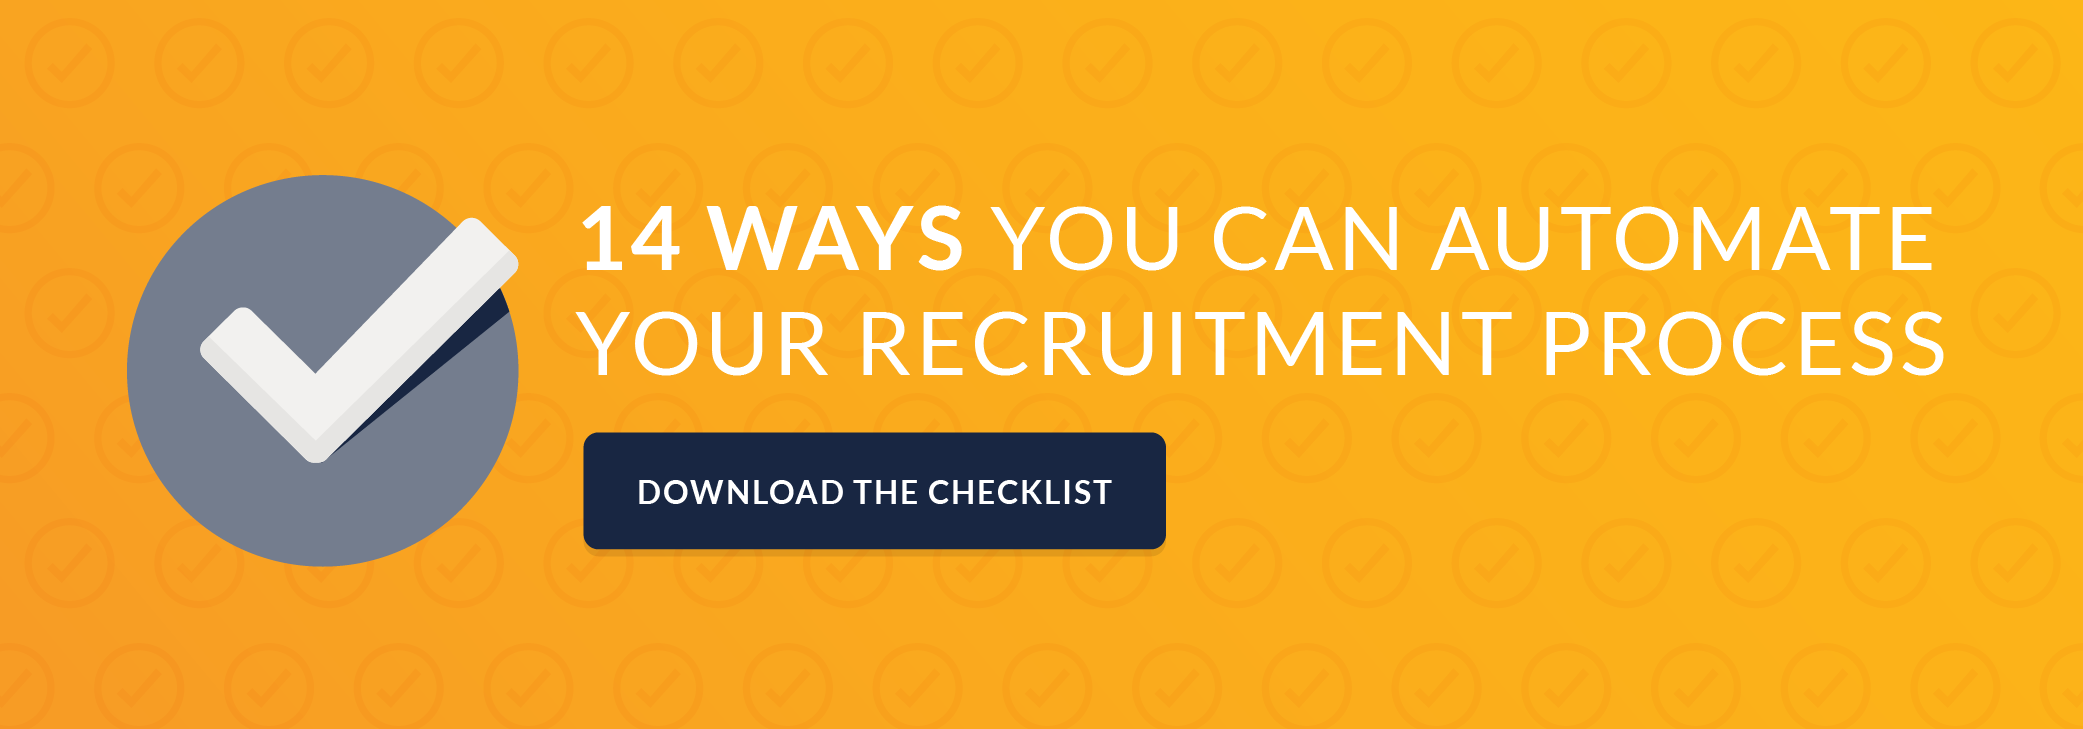 Automation Guide CareerBuilder